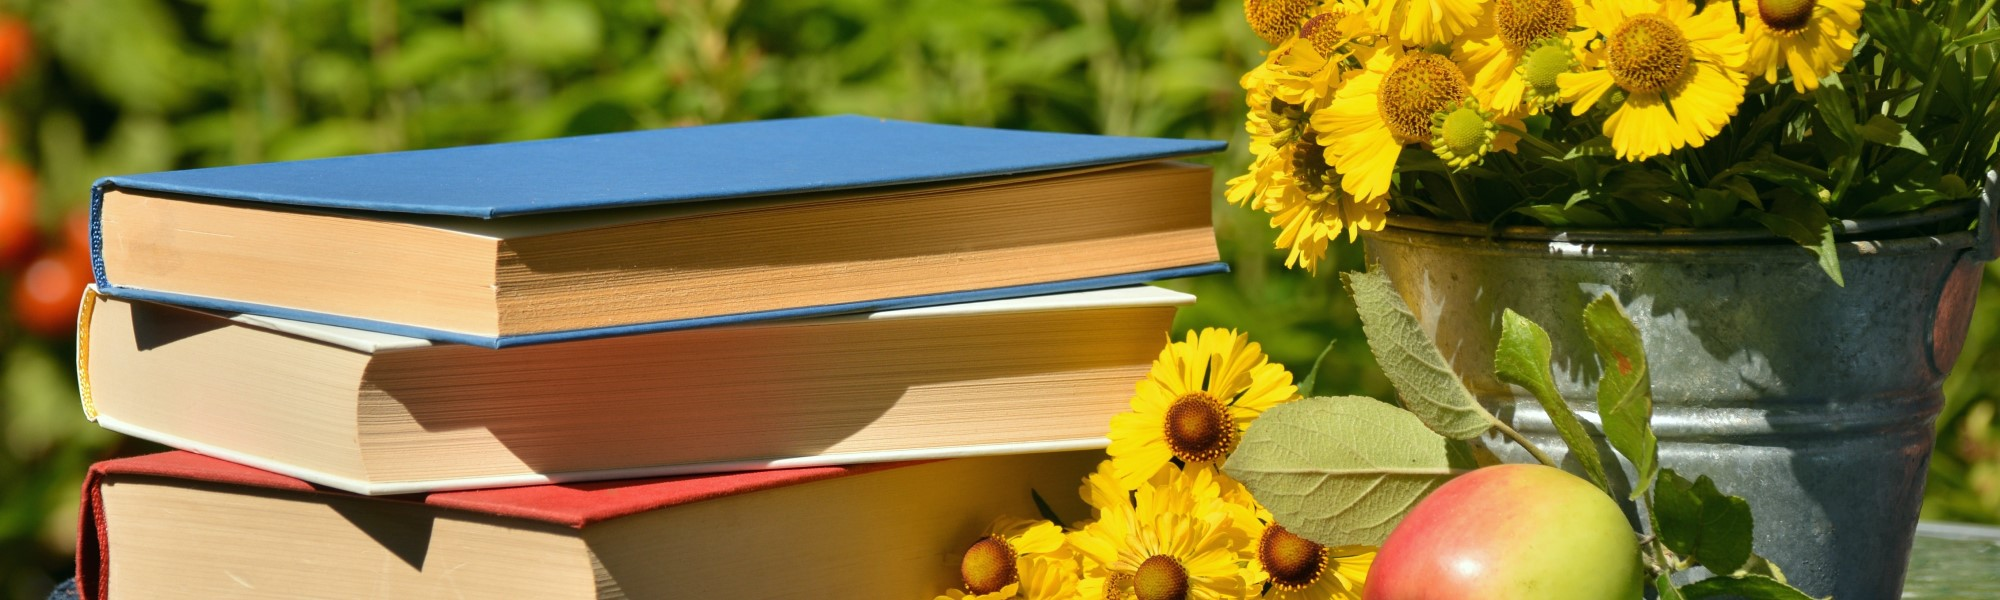 books in grass with flowers